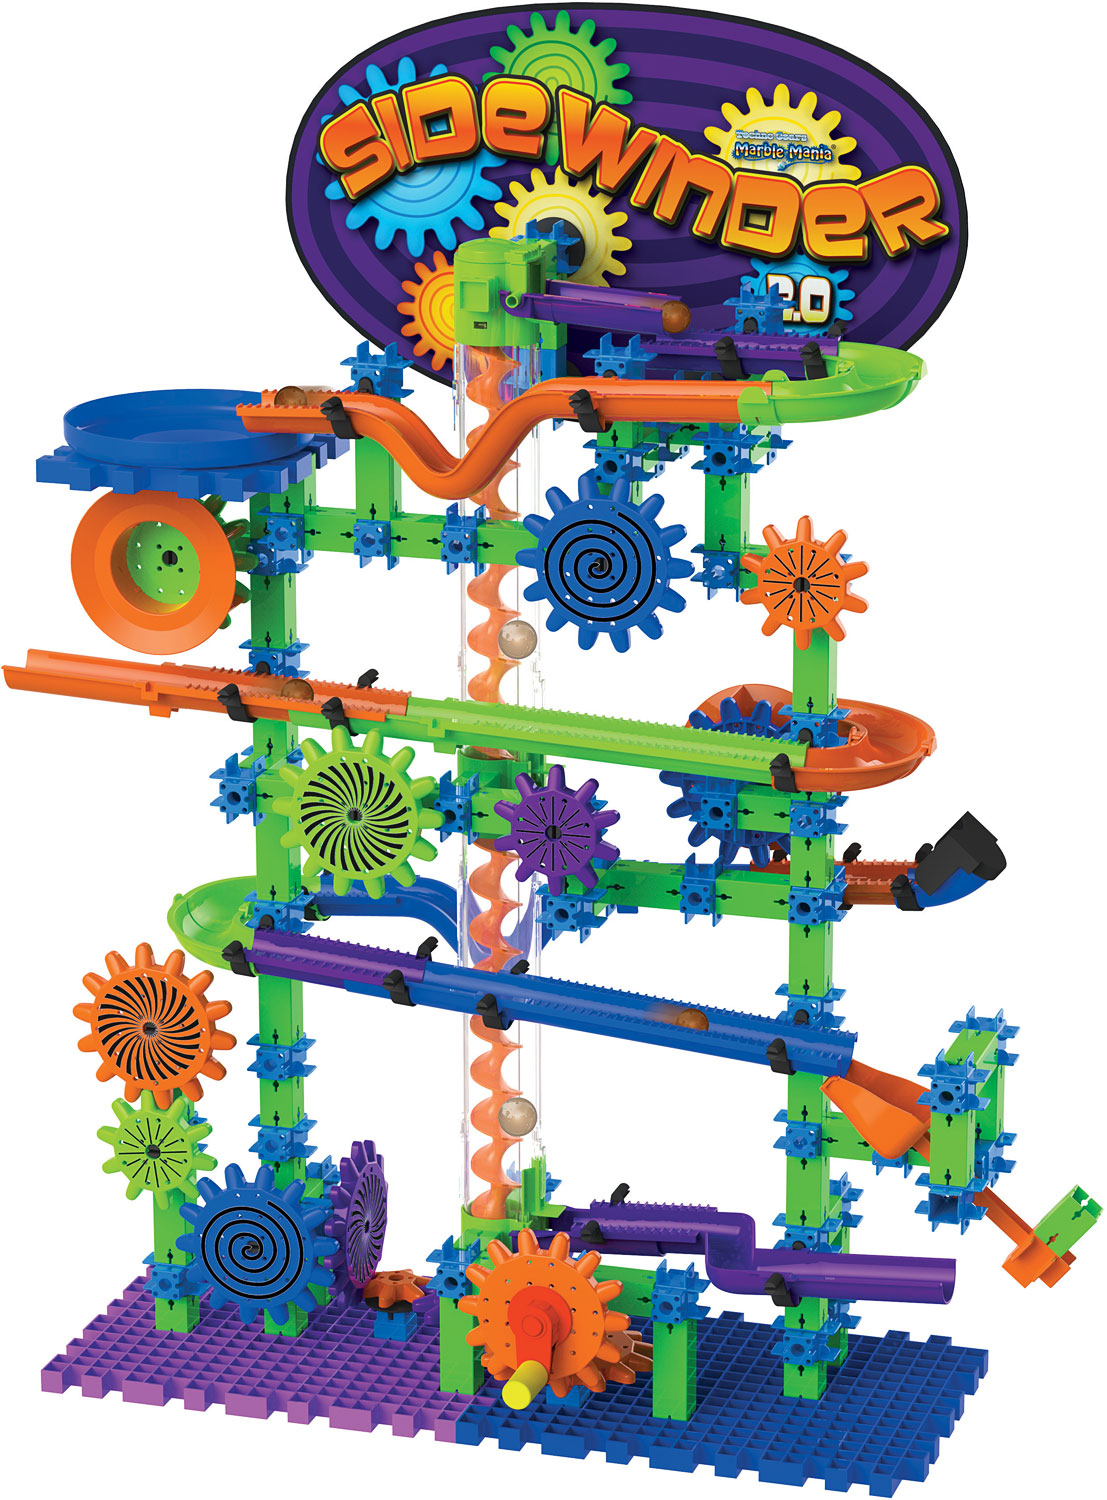 Techno Gears Marble Mania Sidewinder 2 0 454282 The